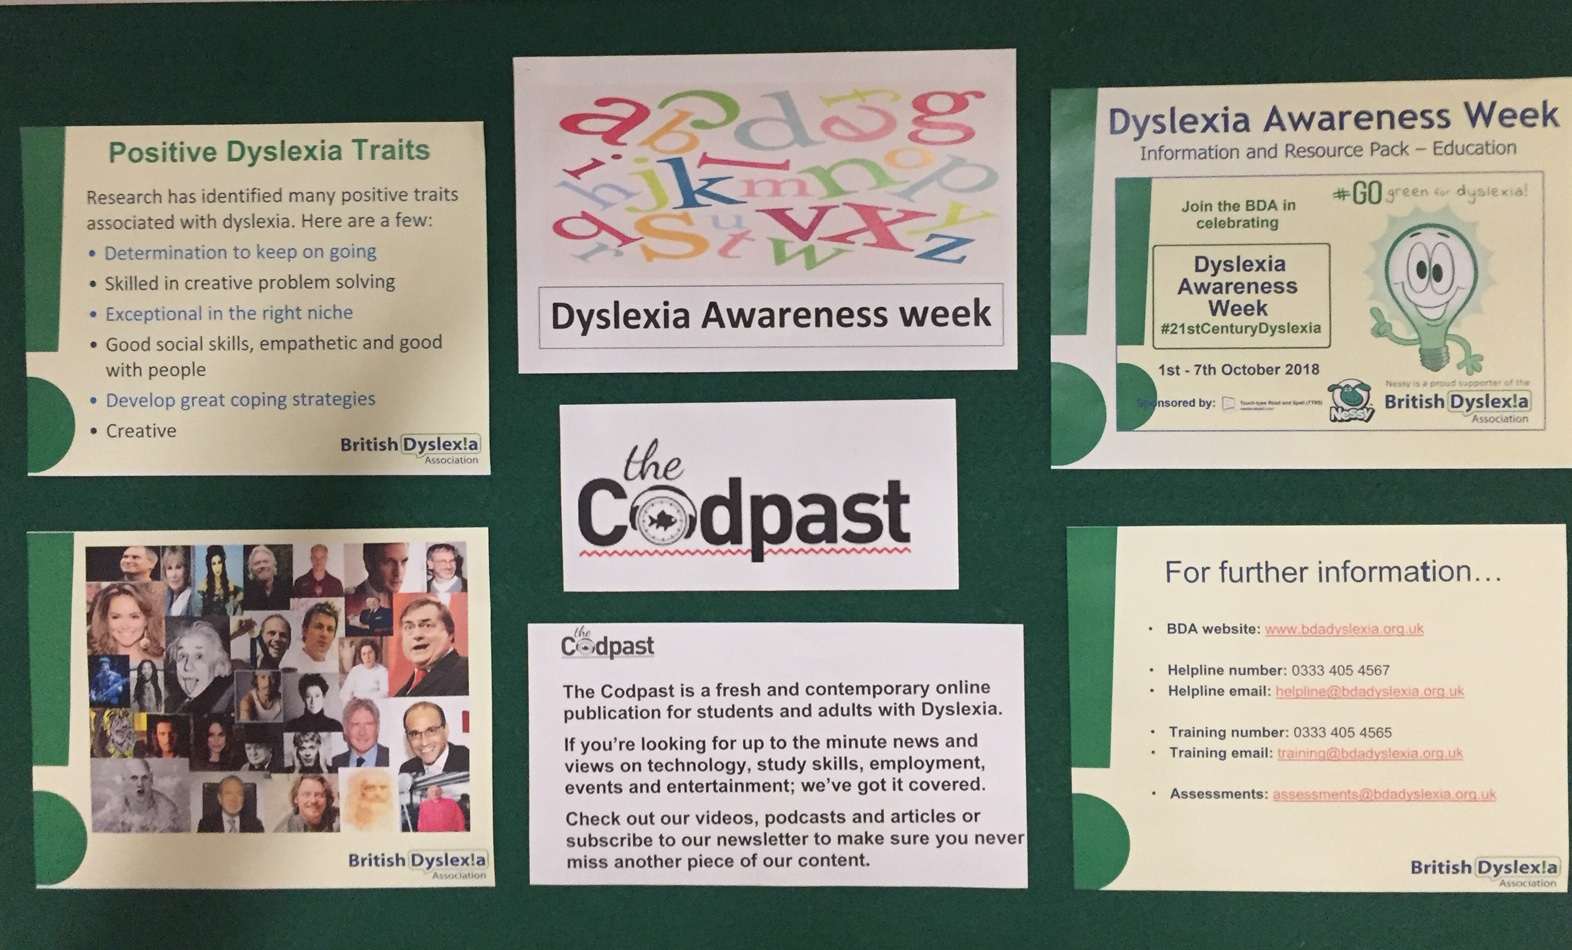 A photo of the dyslexia display containing posters for dyslexia support and further information.